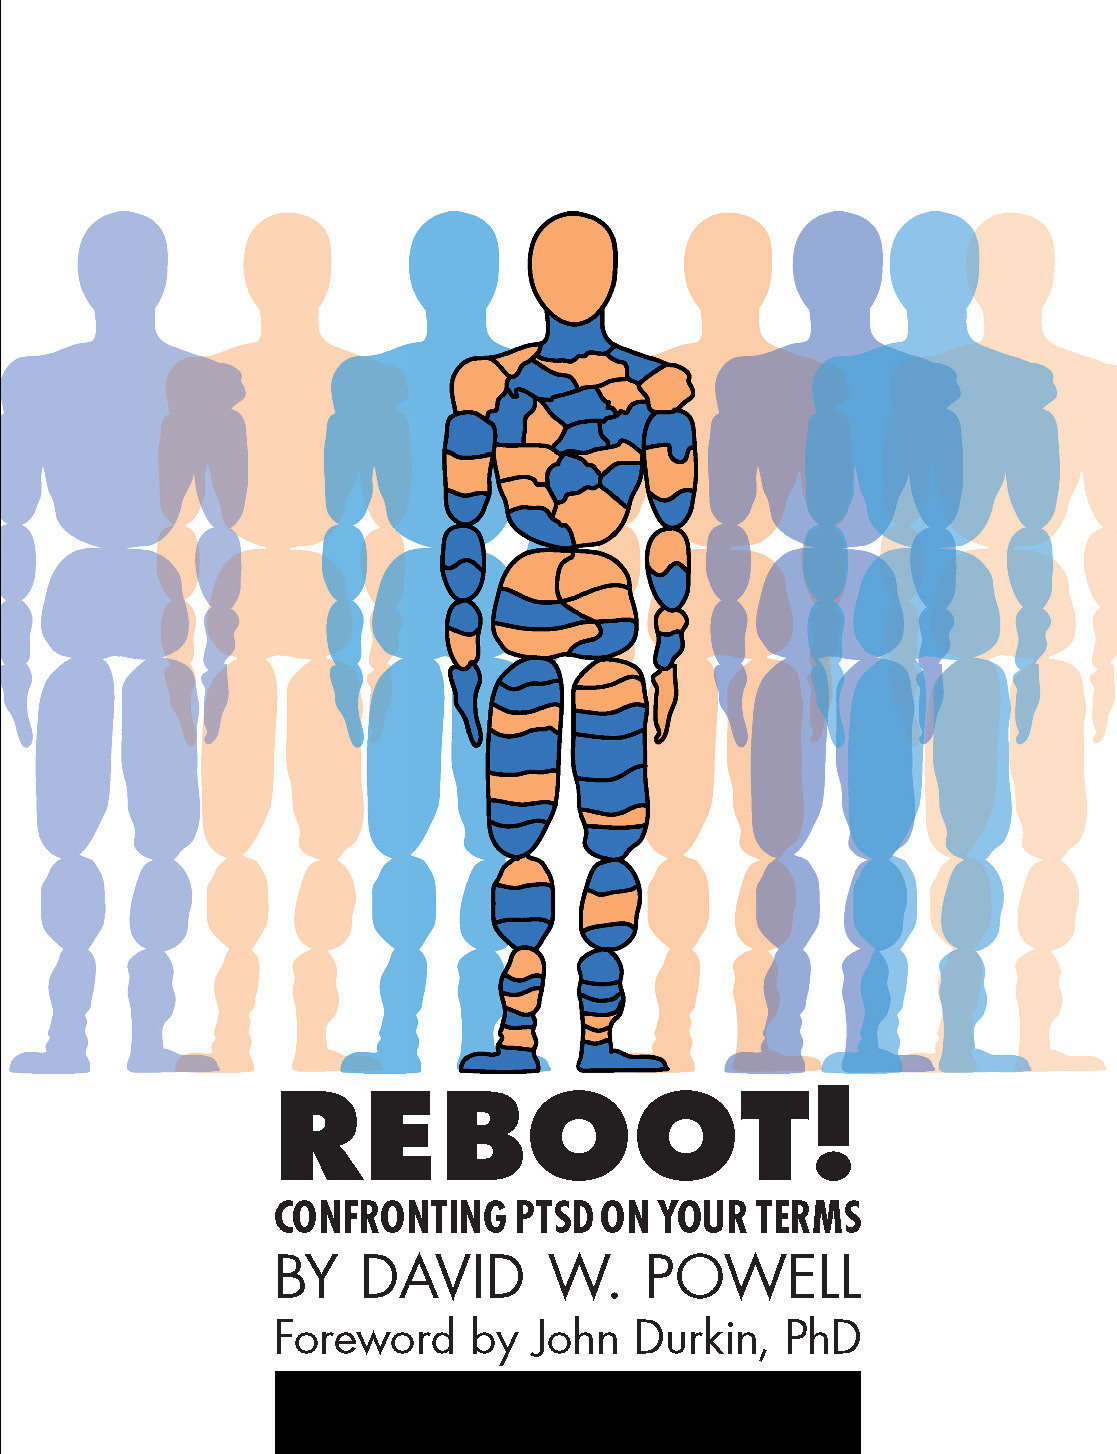 REBOOT!: Confronting PTSD on Your Terms 978-1-61599-084-9